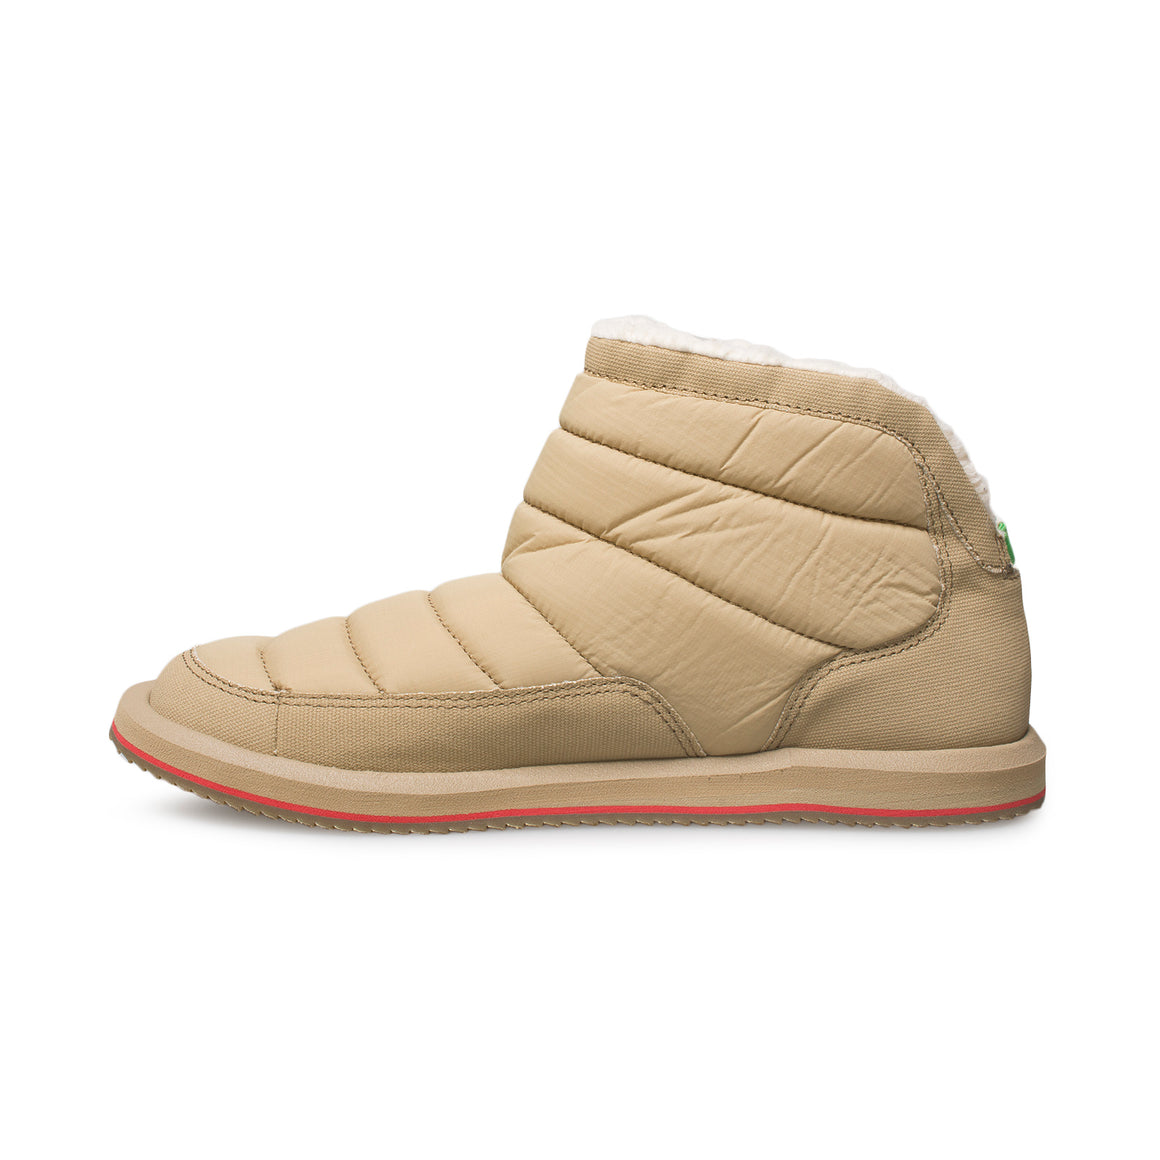 Sanuk Puff N Chill Tan Shoes - Women's